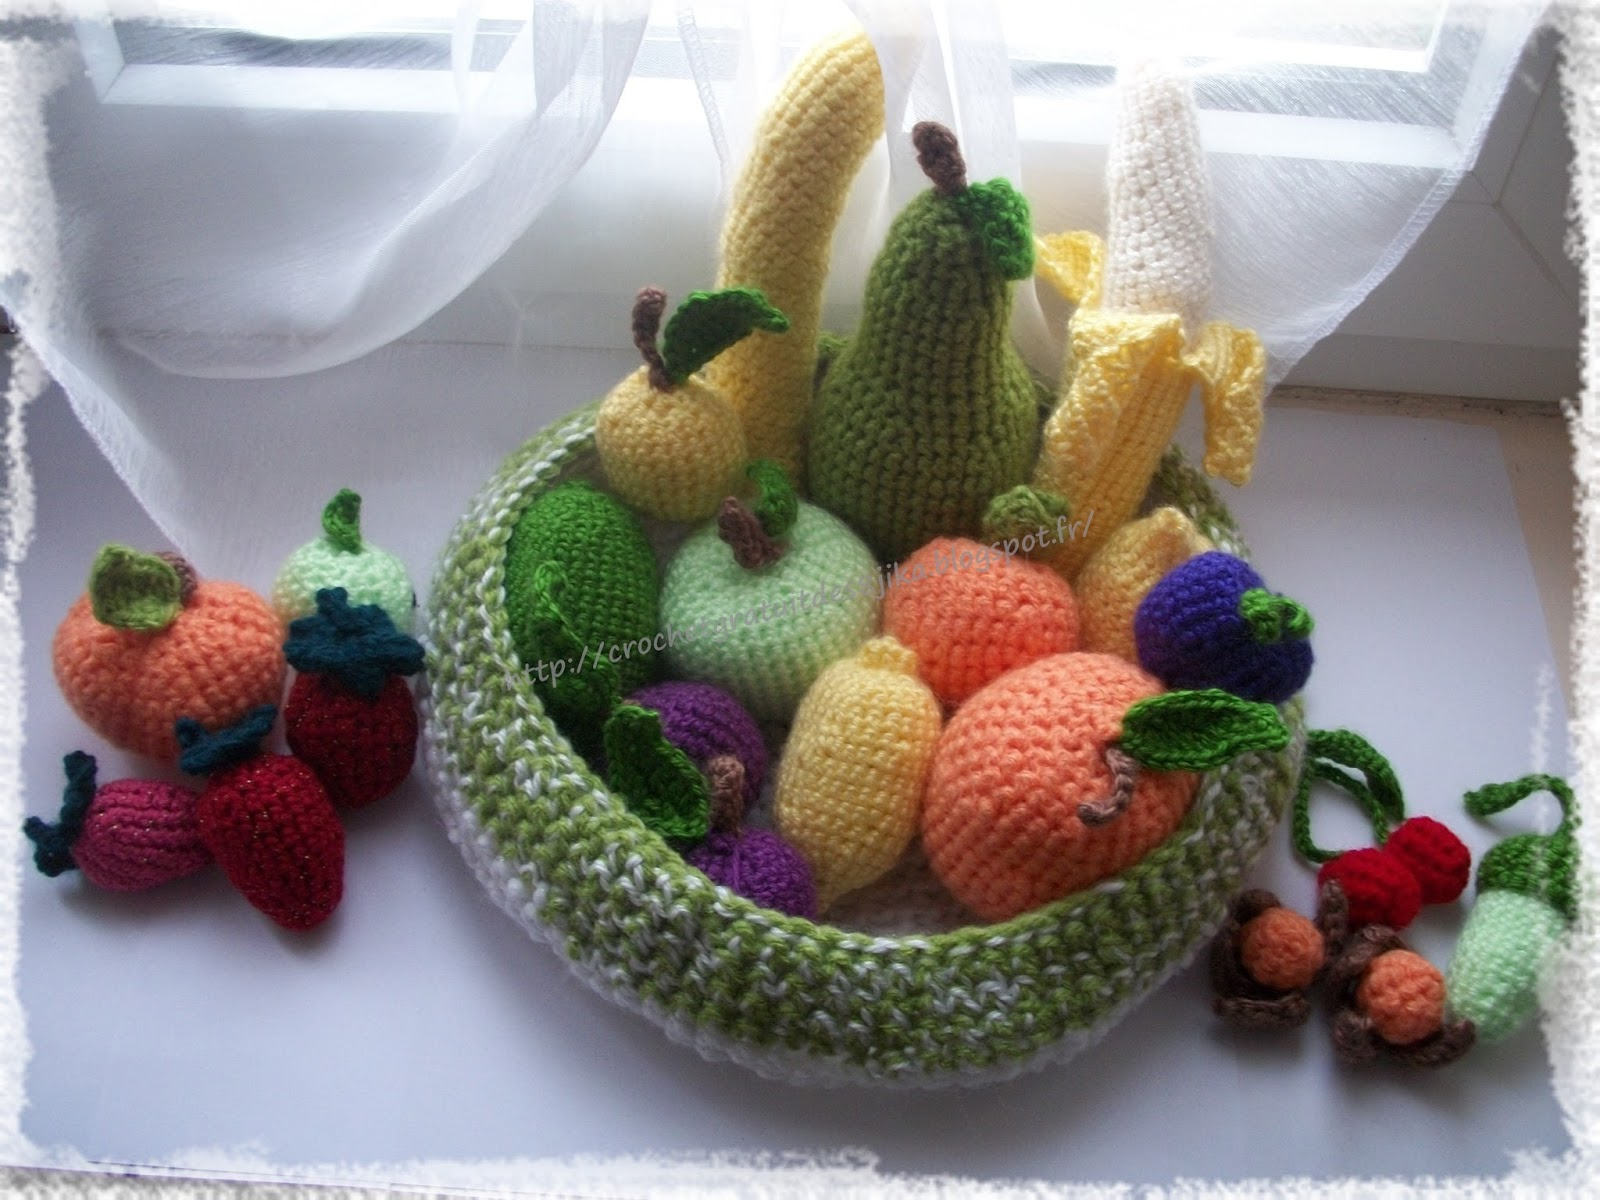 le crochet des8jika qui a t il dans ma corbeille de fruits au crochet. Black Bedroom Furniture Sets. Home Design Ideas